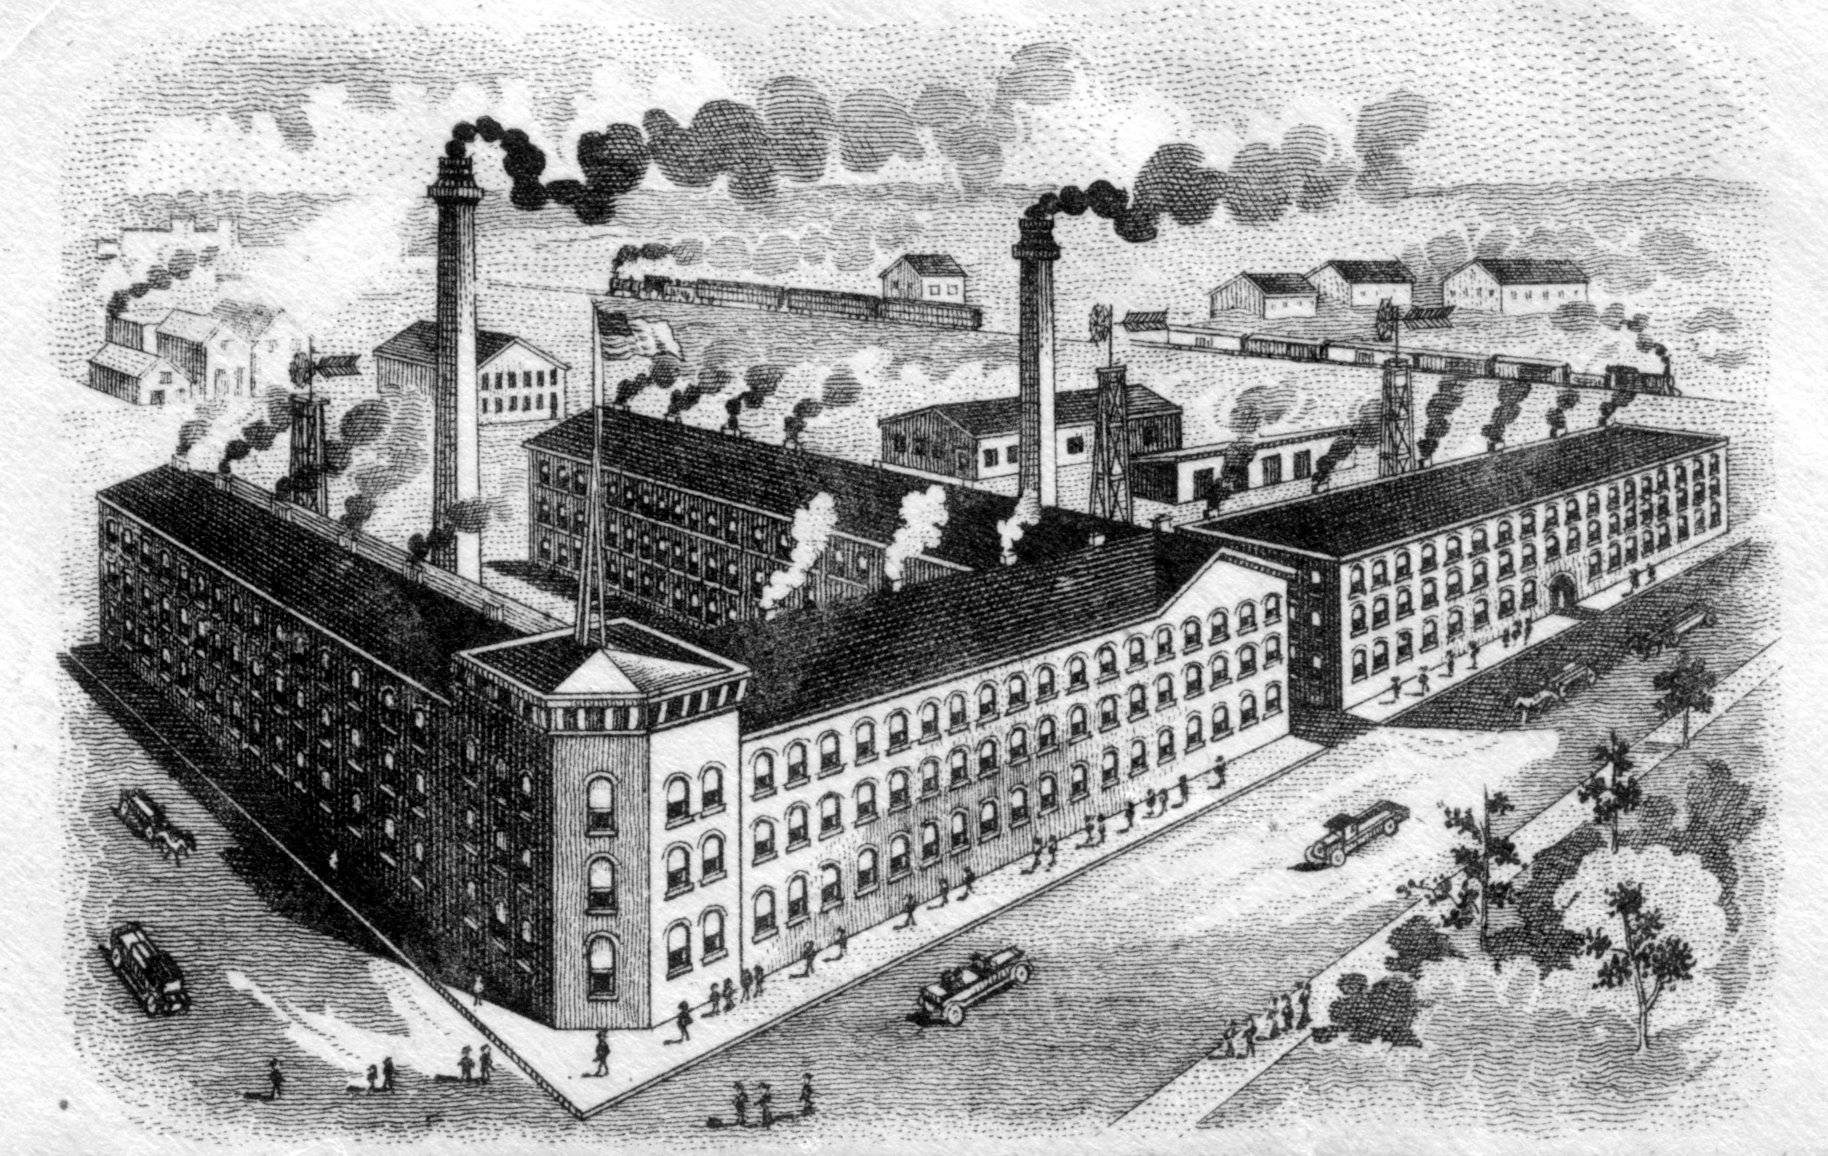 image of a factory on an envelope